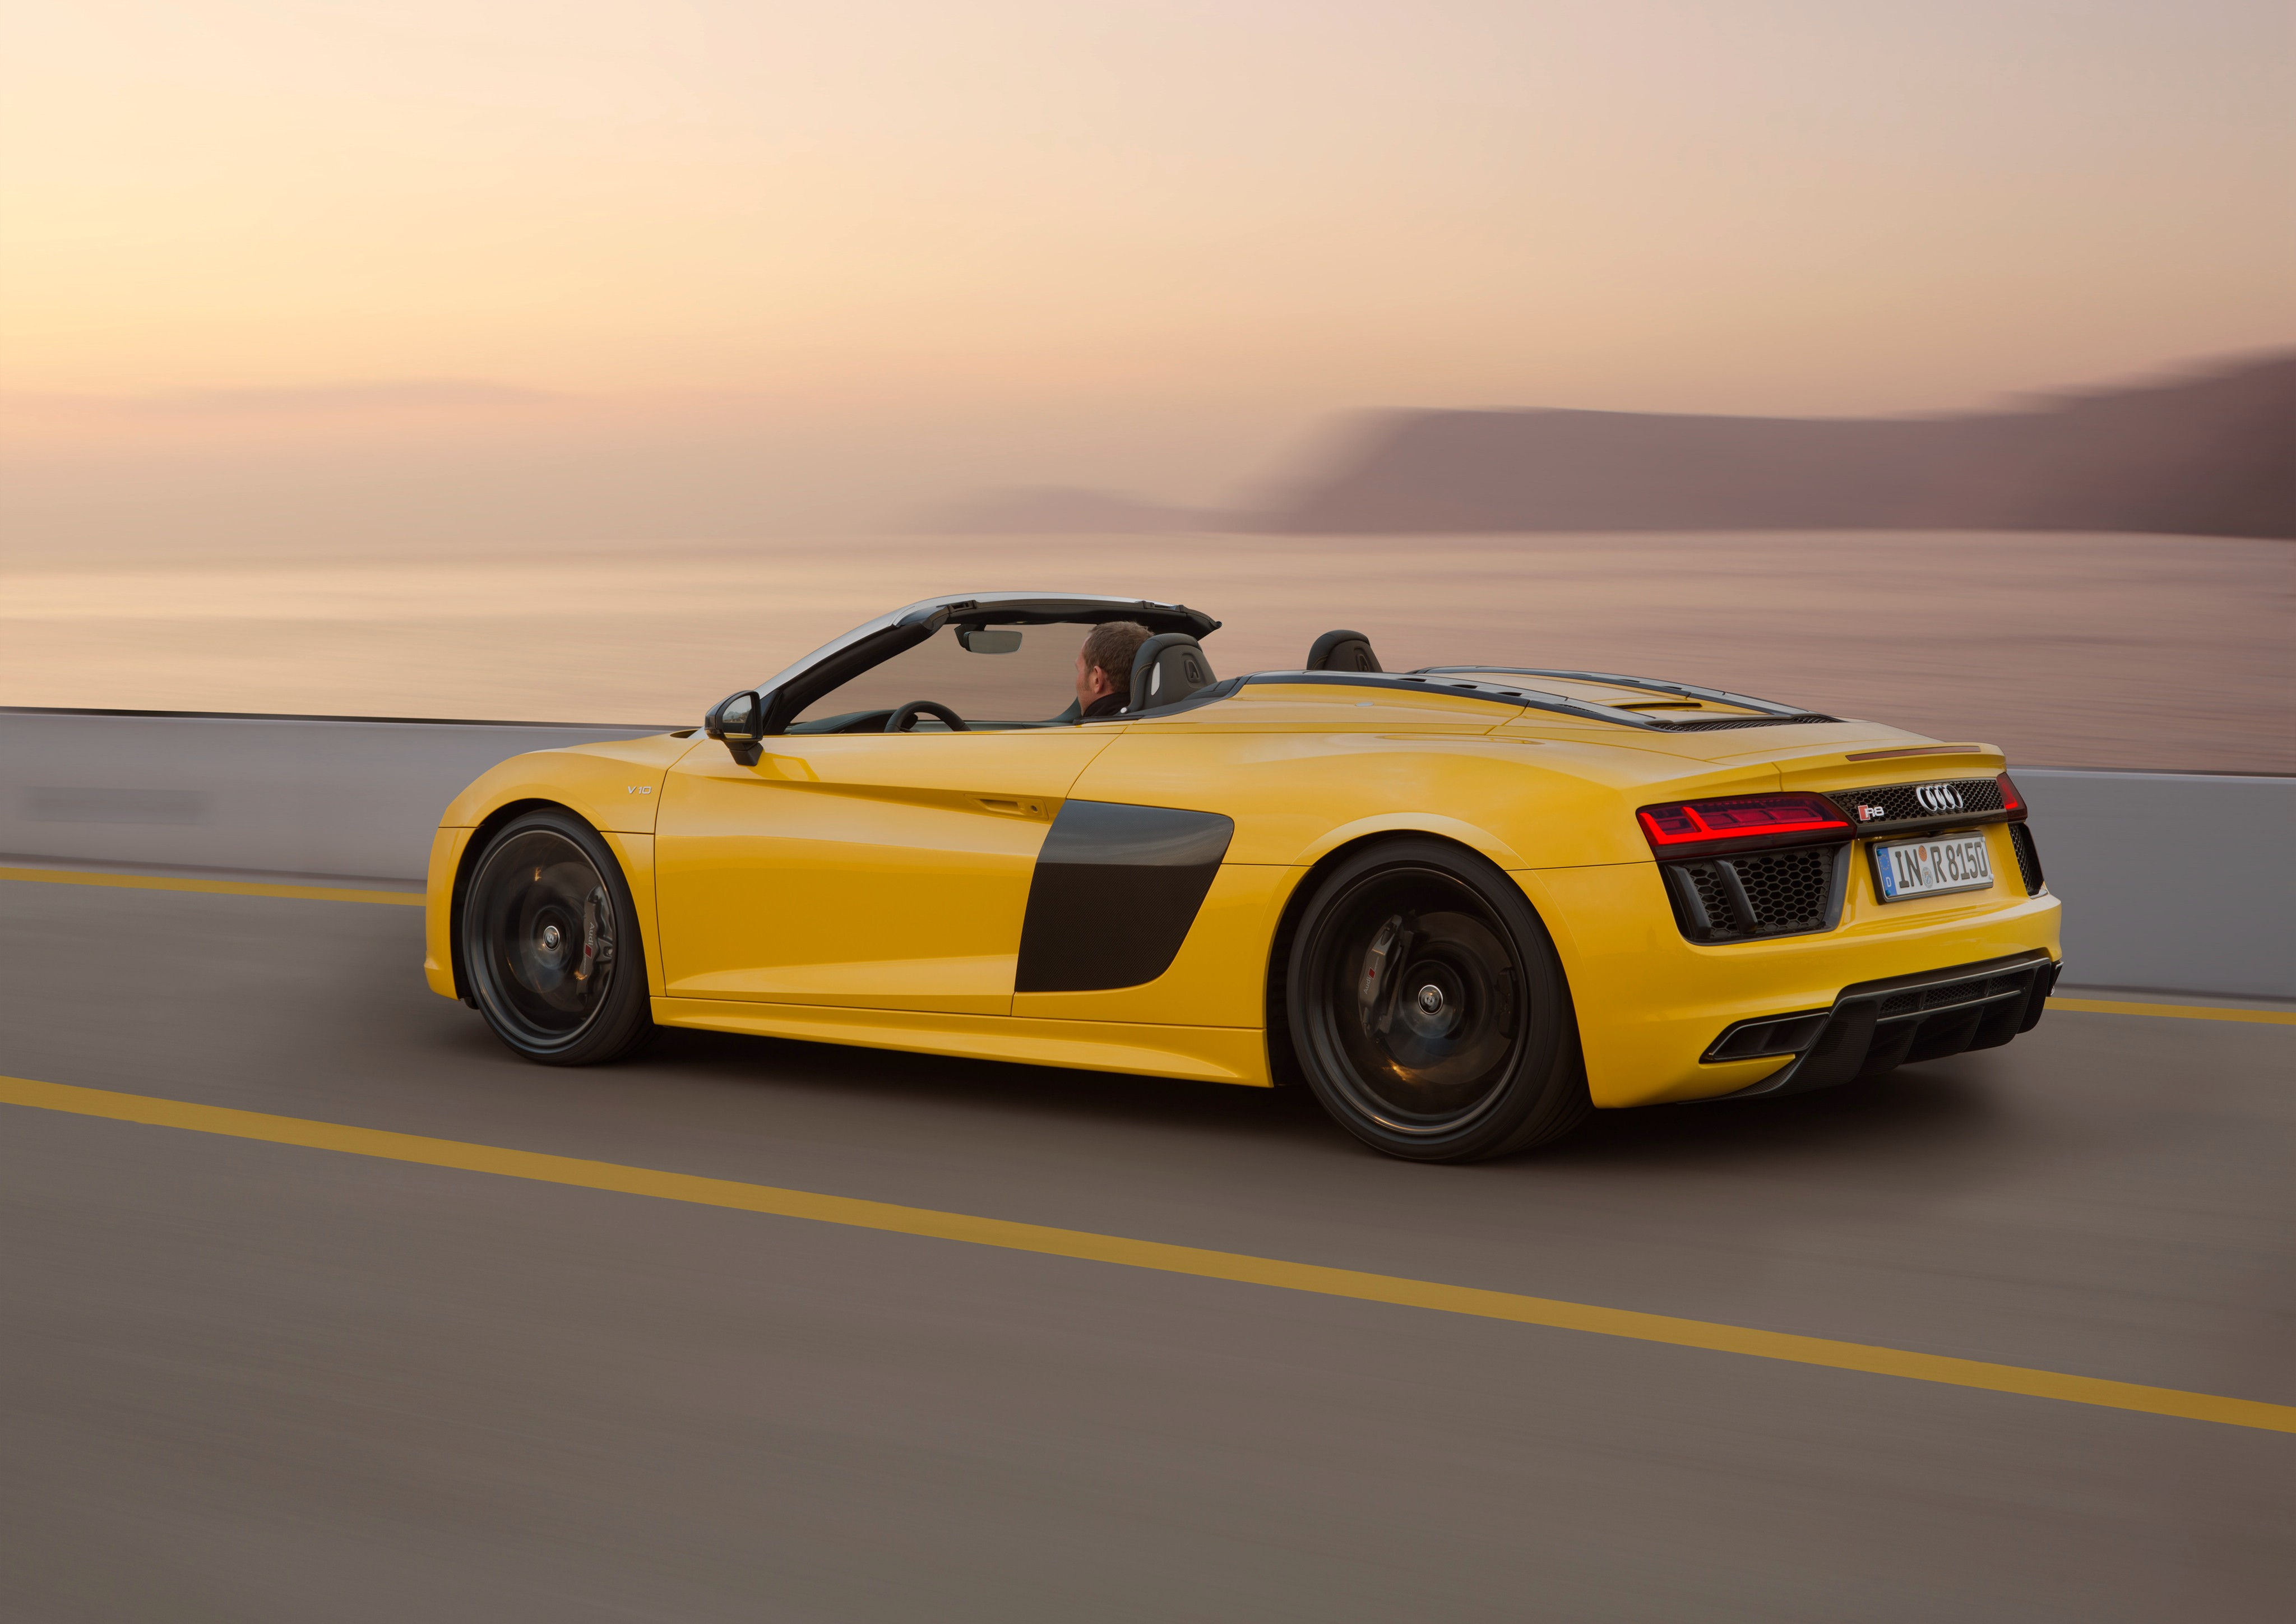 2017 audi r8 spyder price set from 179 000 in germany autoevolution. Black Bedroom Furniture Sets. Home Design Ideas